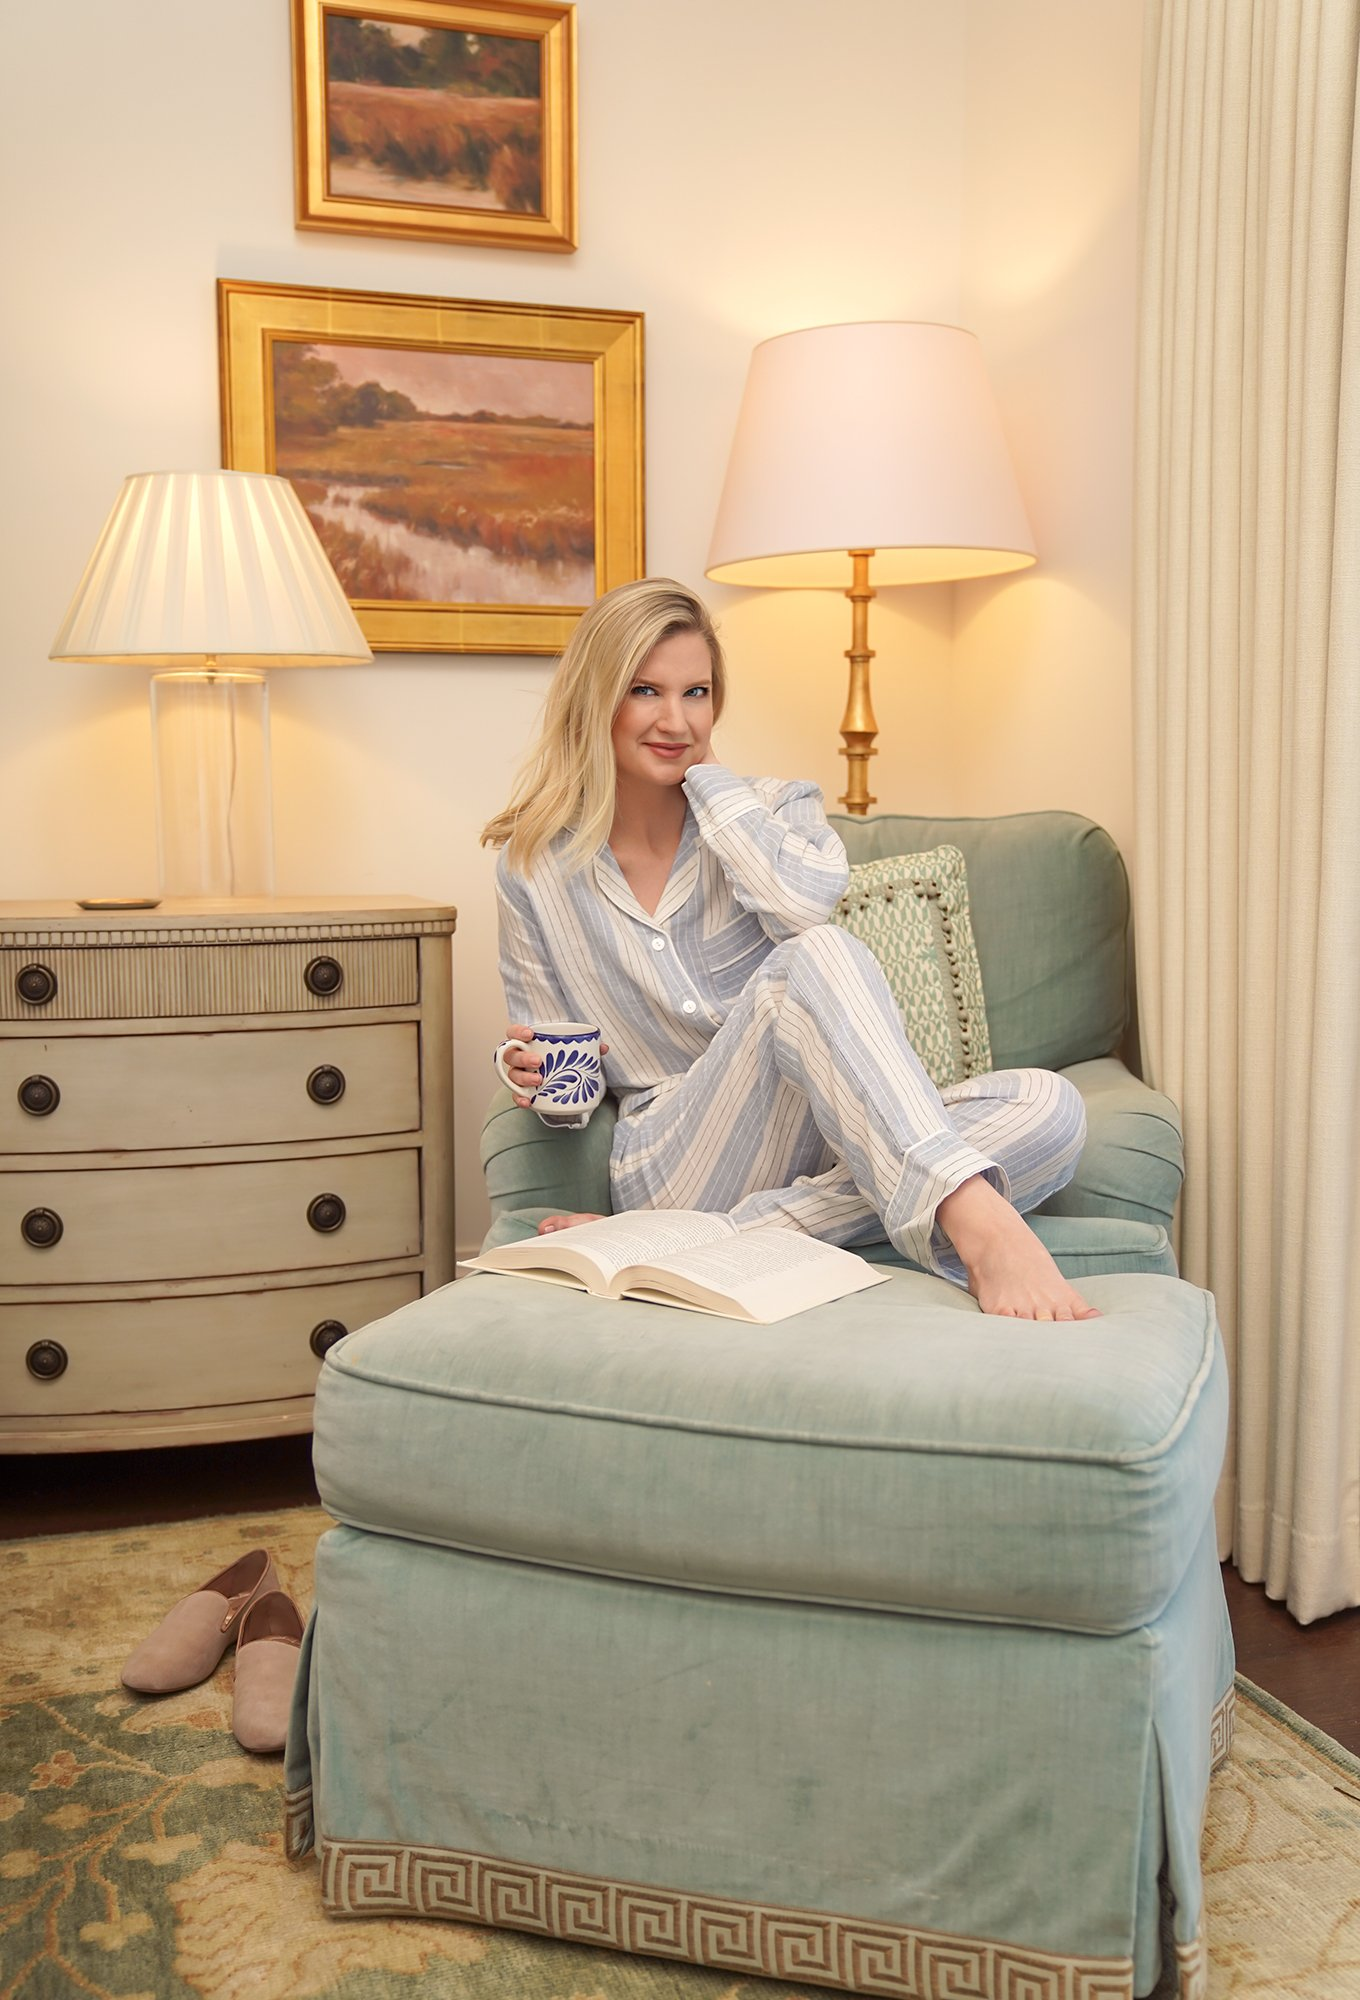 Linen Pajama Sets and Lazy Mornings